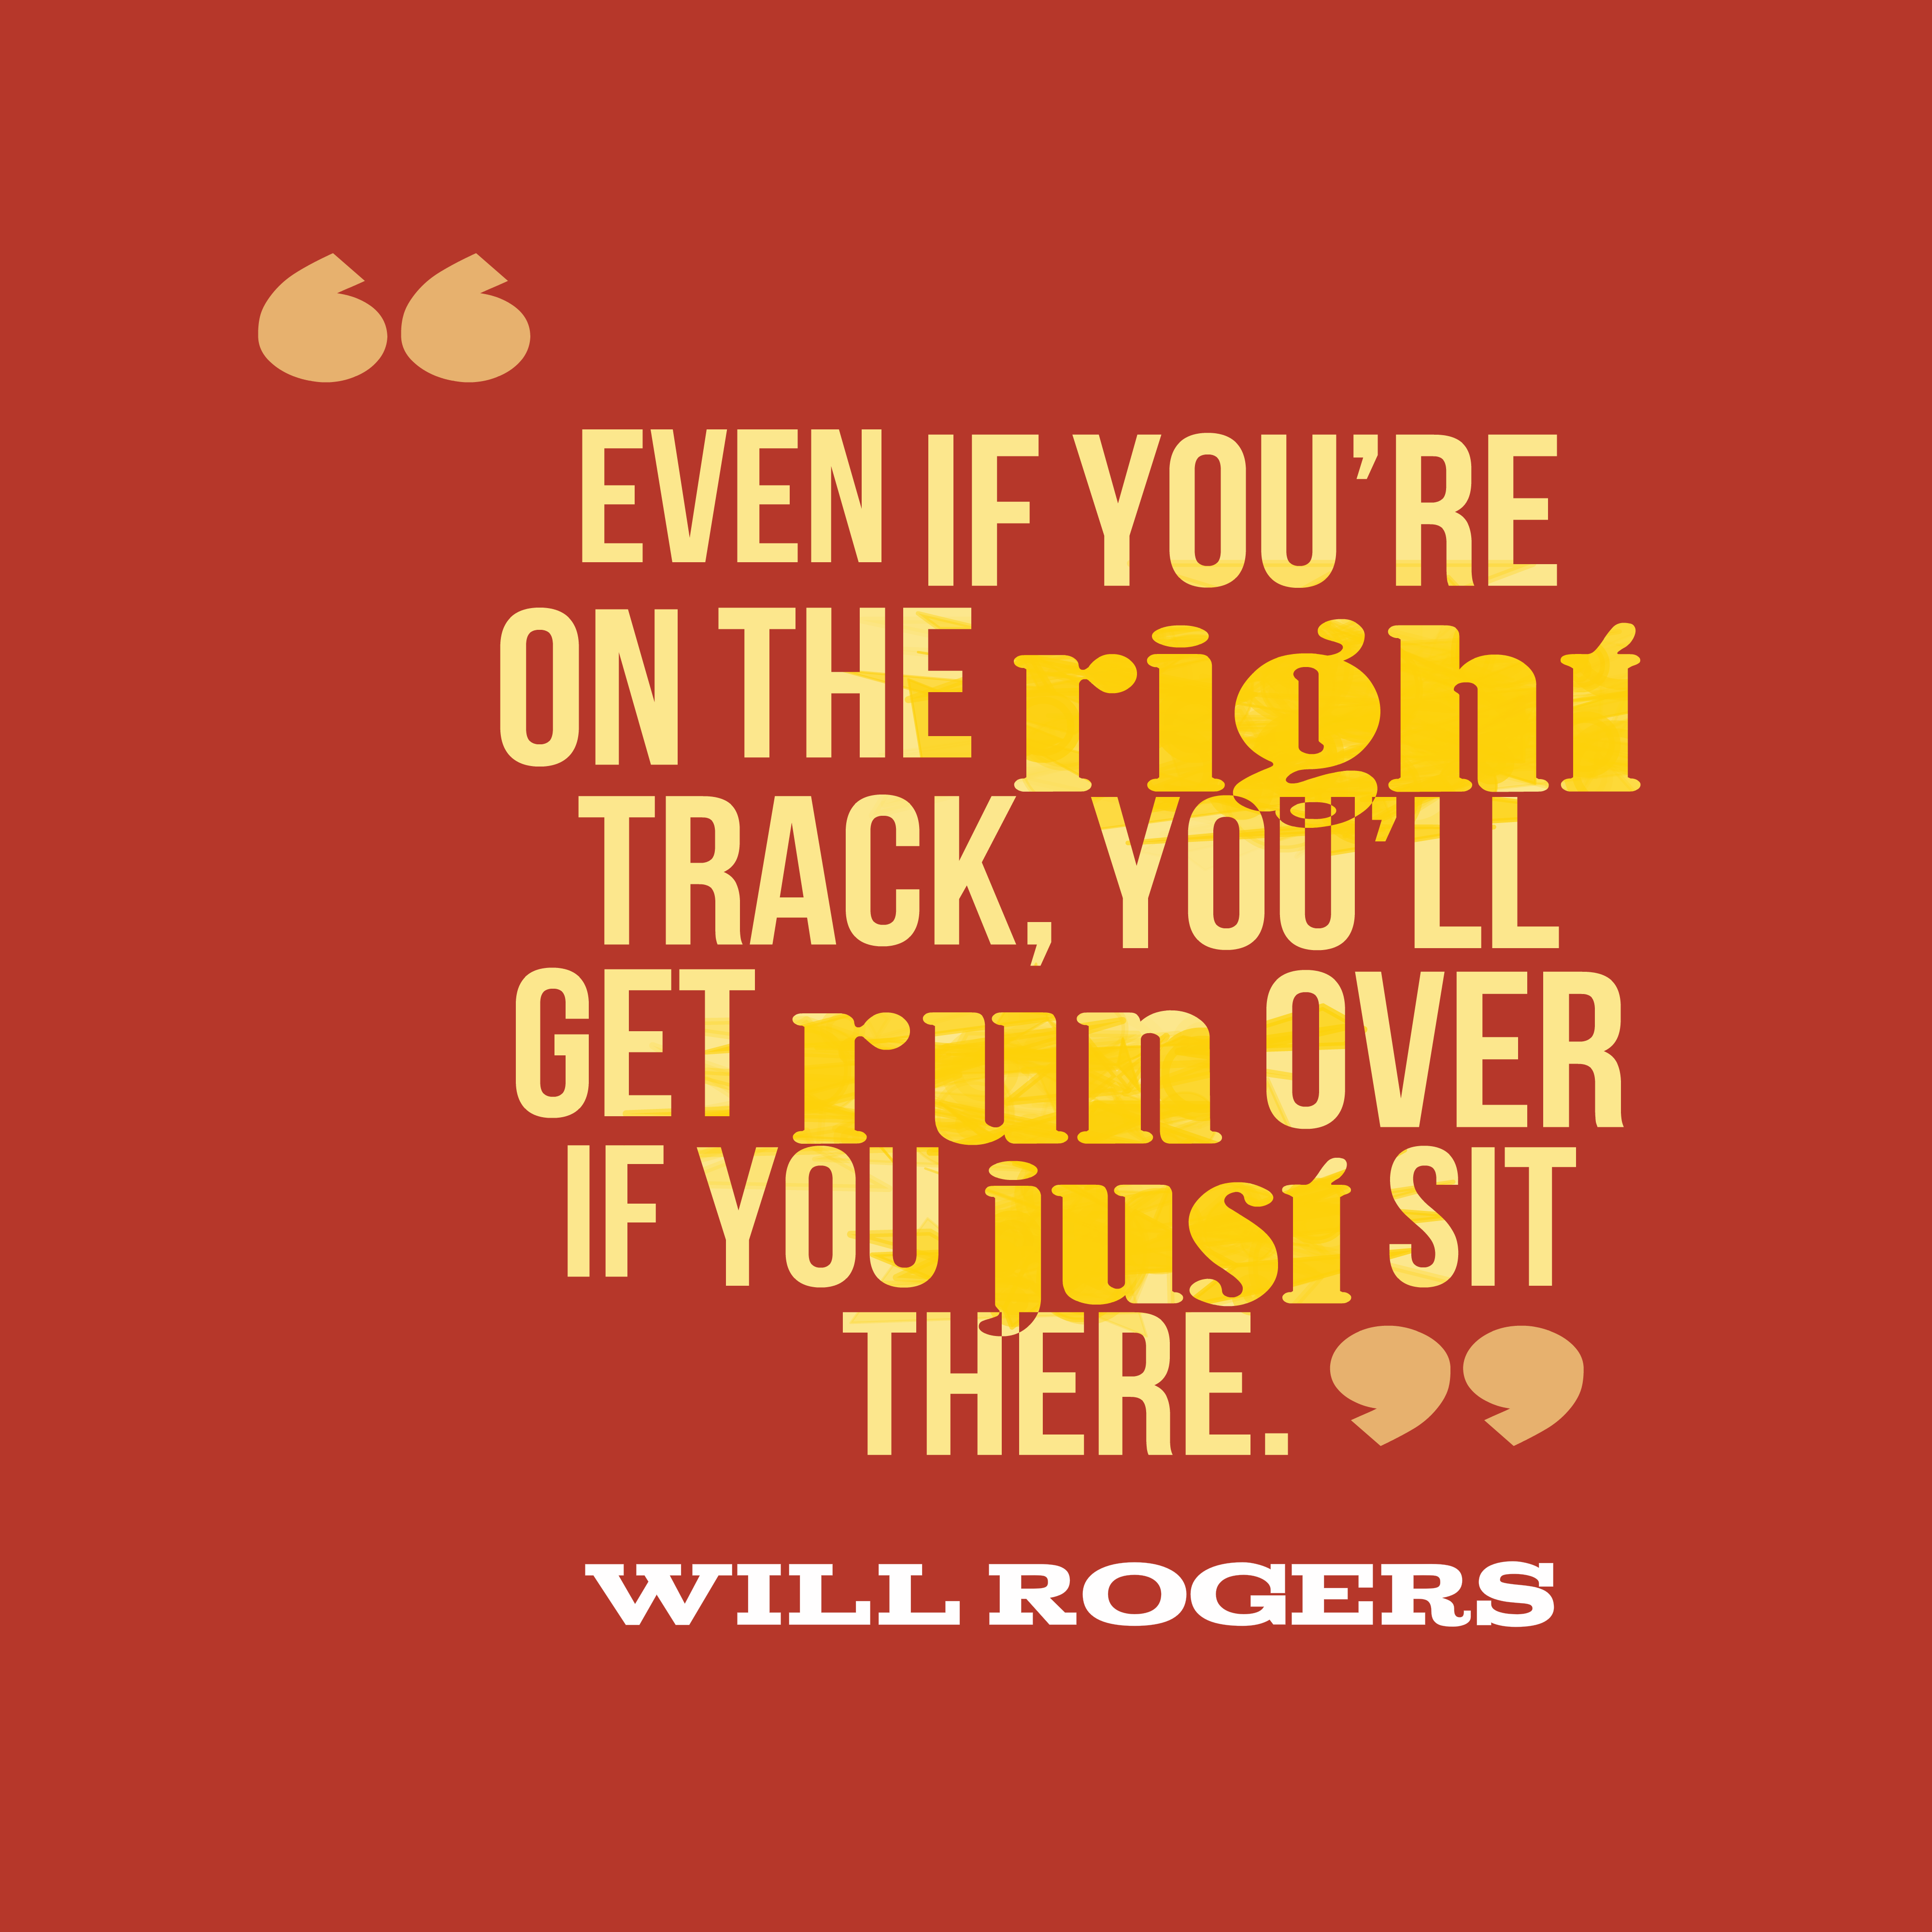 Quotes image of Even if you're on the right track, you'll get run over if you just sit there.